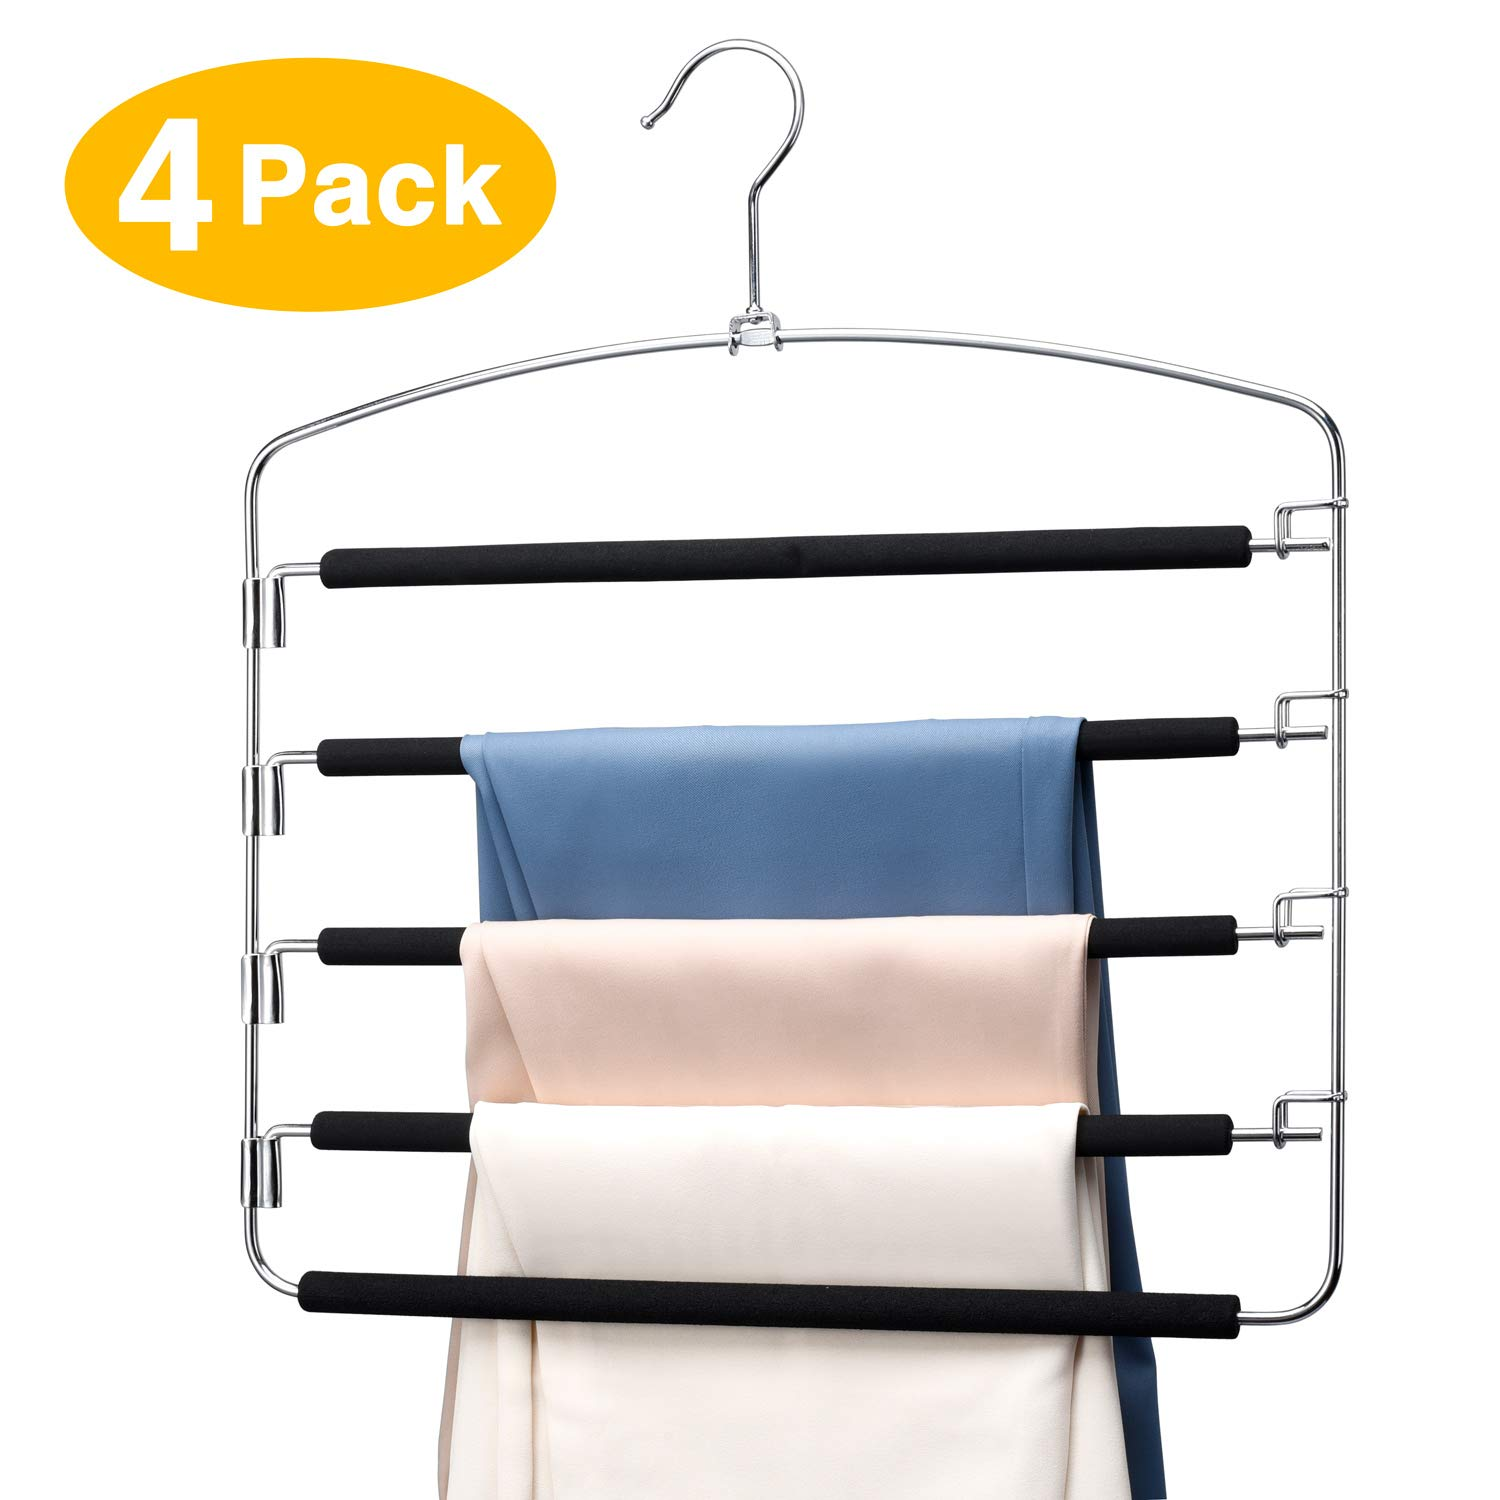 HOUSE DAY Pants Hangers 5 Layers Hangers for Pants Space Saving Pants Hanger Multi Trouser Hanger -4 Pack - Multiple Clothes Hangers for Pants Pants Hangers Space Saving by HOUSE DAY